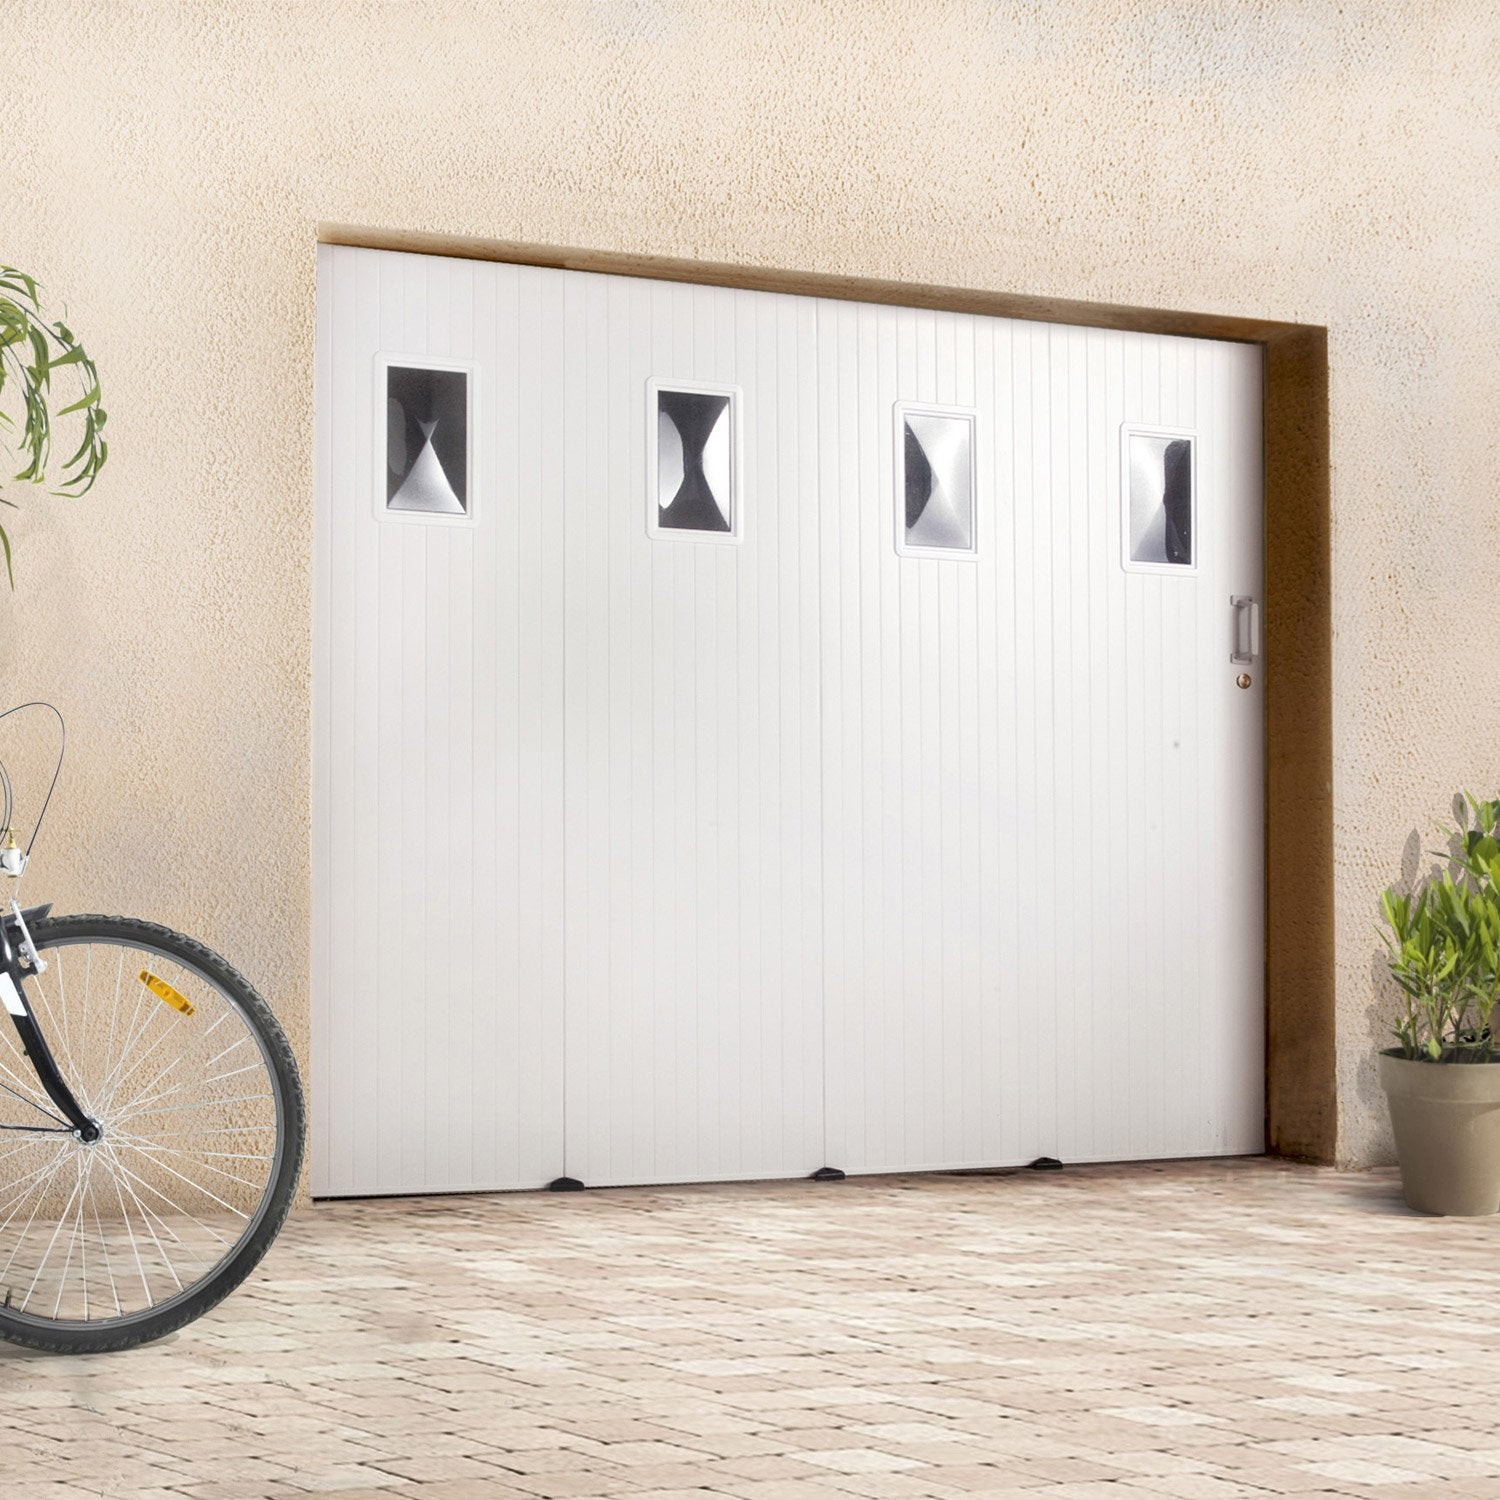 Pose d 39 une porte de garage coulissante leroy merlin for Porte de service leroy merlin